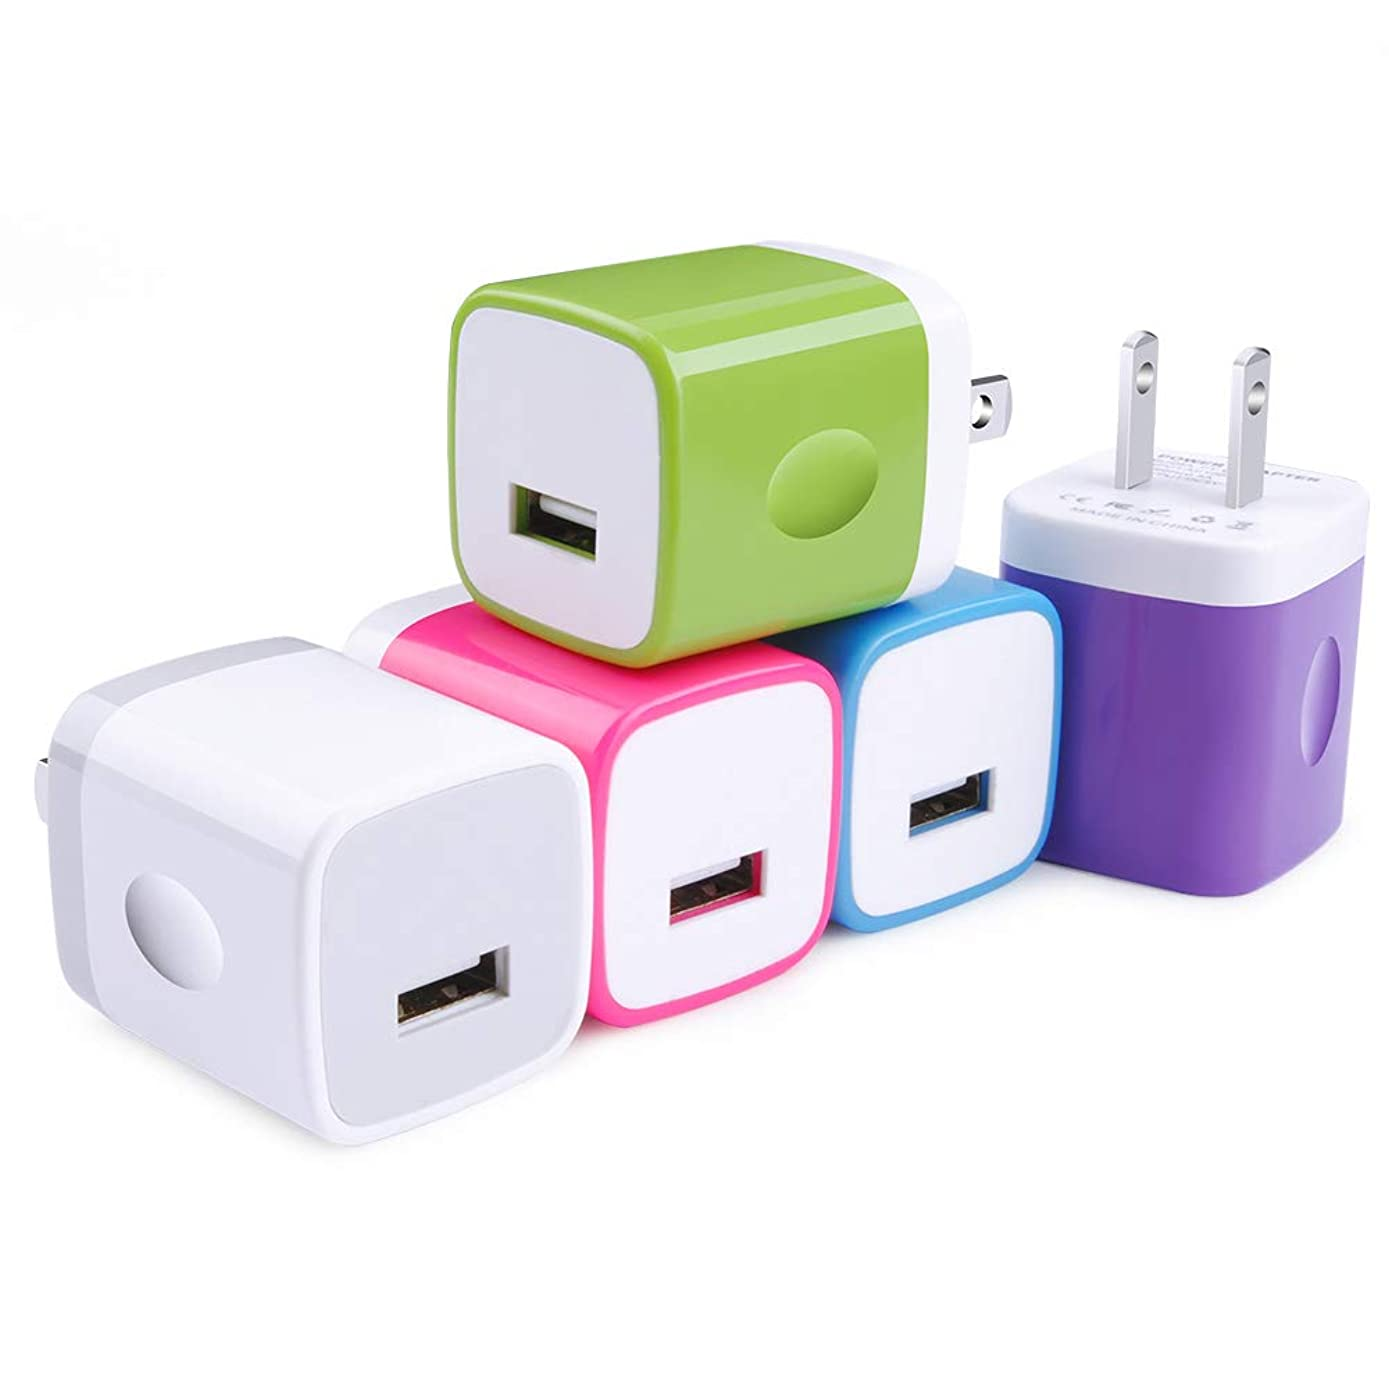 Single USB Wall Charger, TePoo 1A/5V Single Port USB Wall Charger Plug 5 Pack Compatible with iPhone X/8/7/6S/6S Plus/6 Plus/6/5S, Samsung Galaxy S9/S8/S7 Edge,HTC,LG,Nexus,Moto, BlackBerry and More